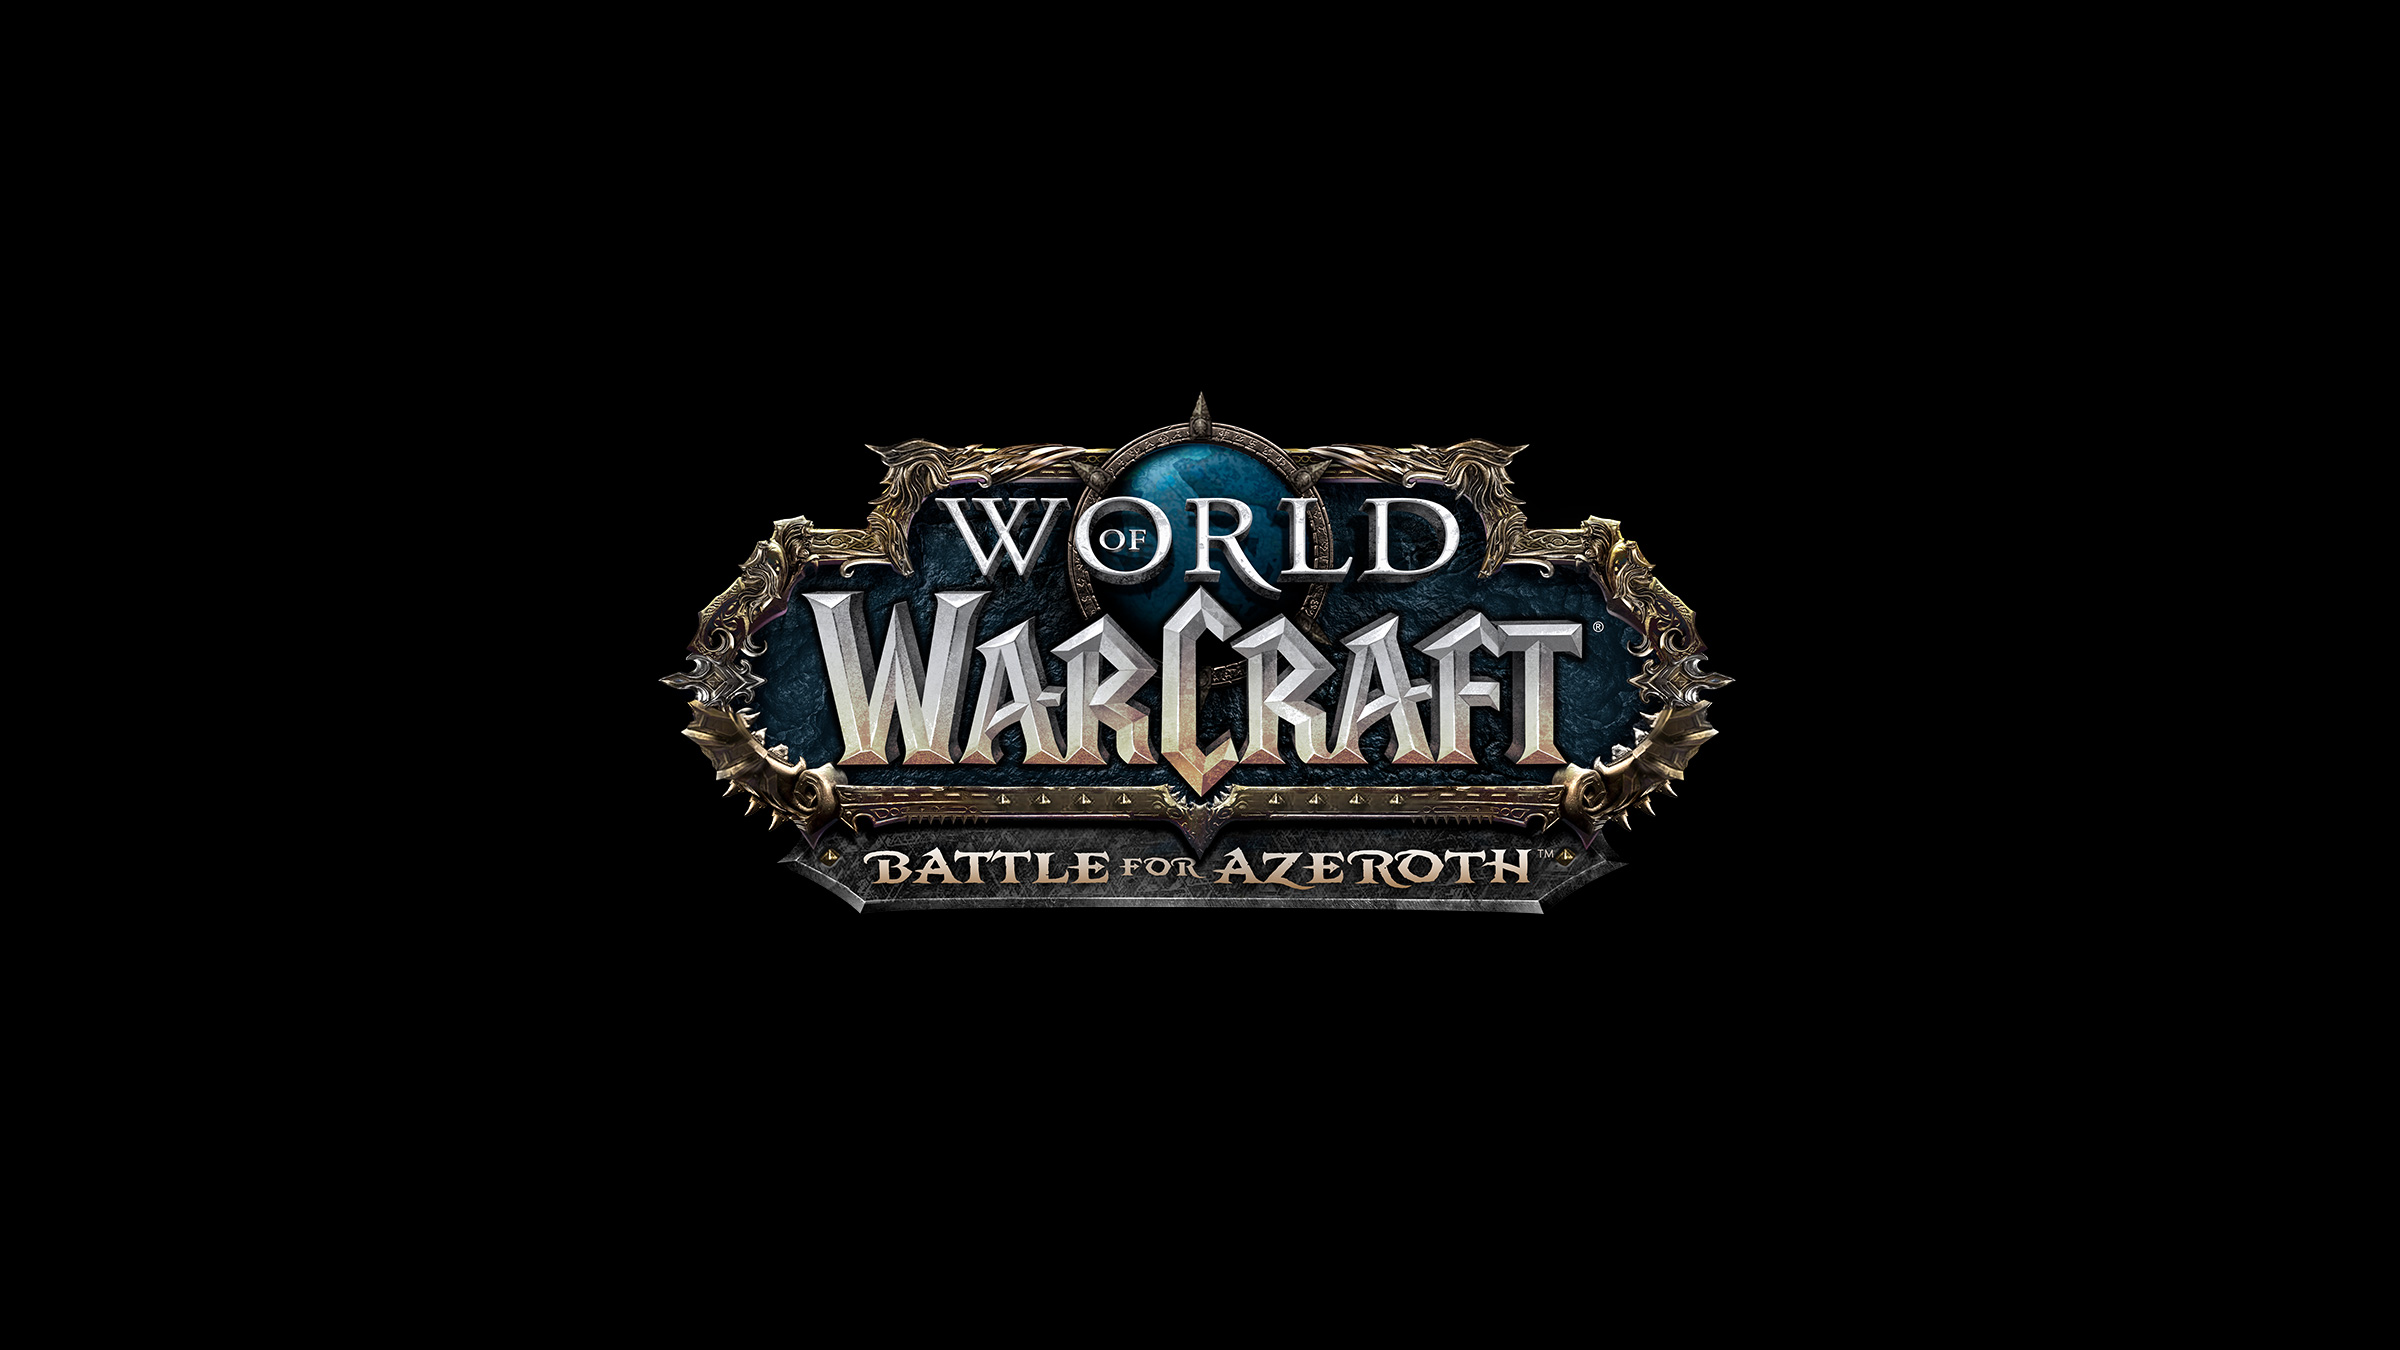 World of Warcraft en la BlizzCon 2017